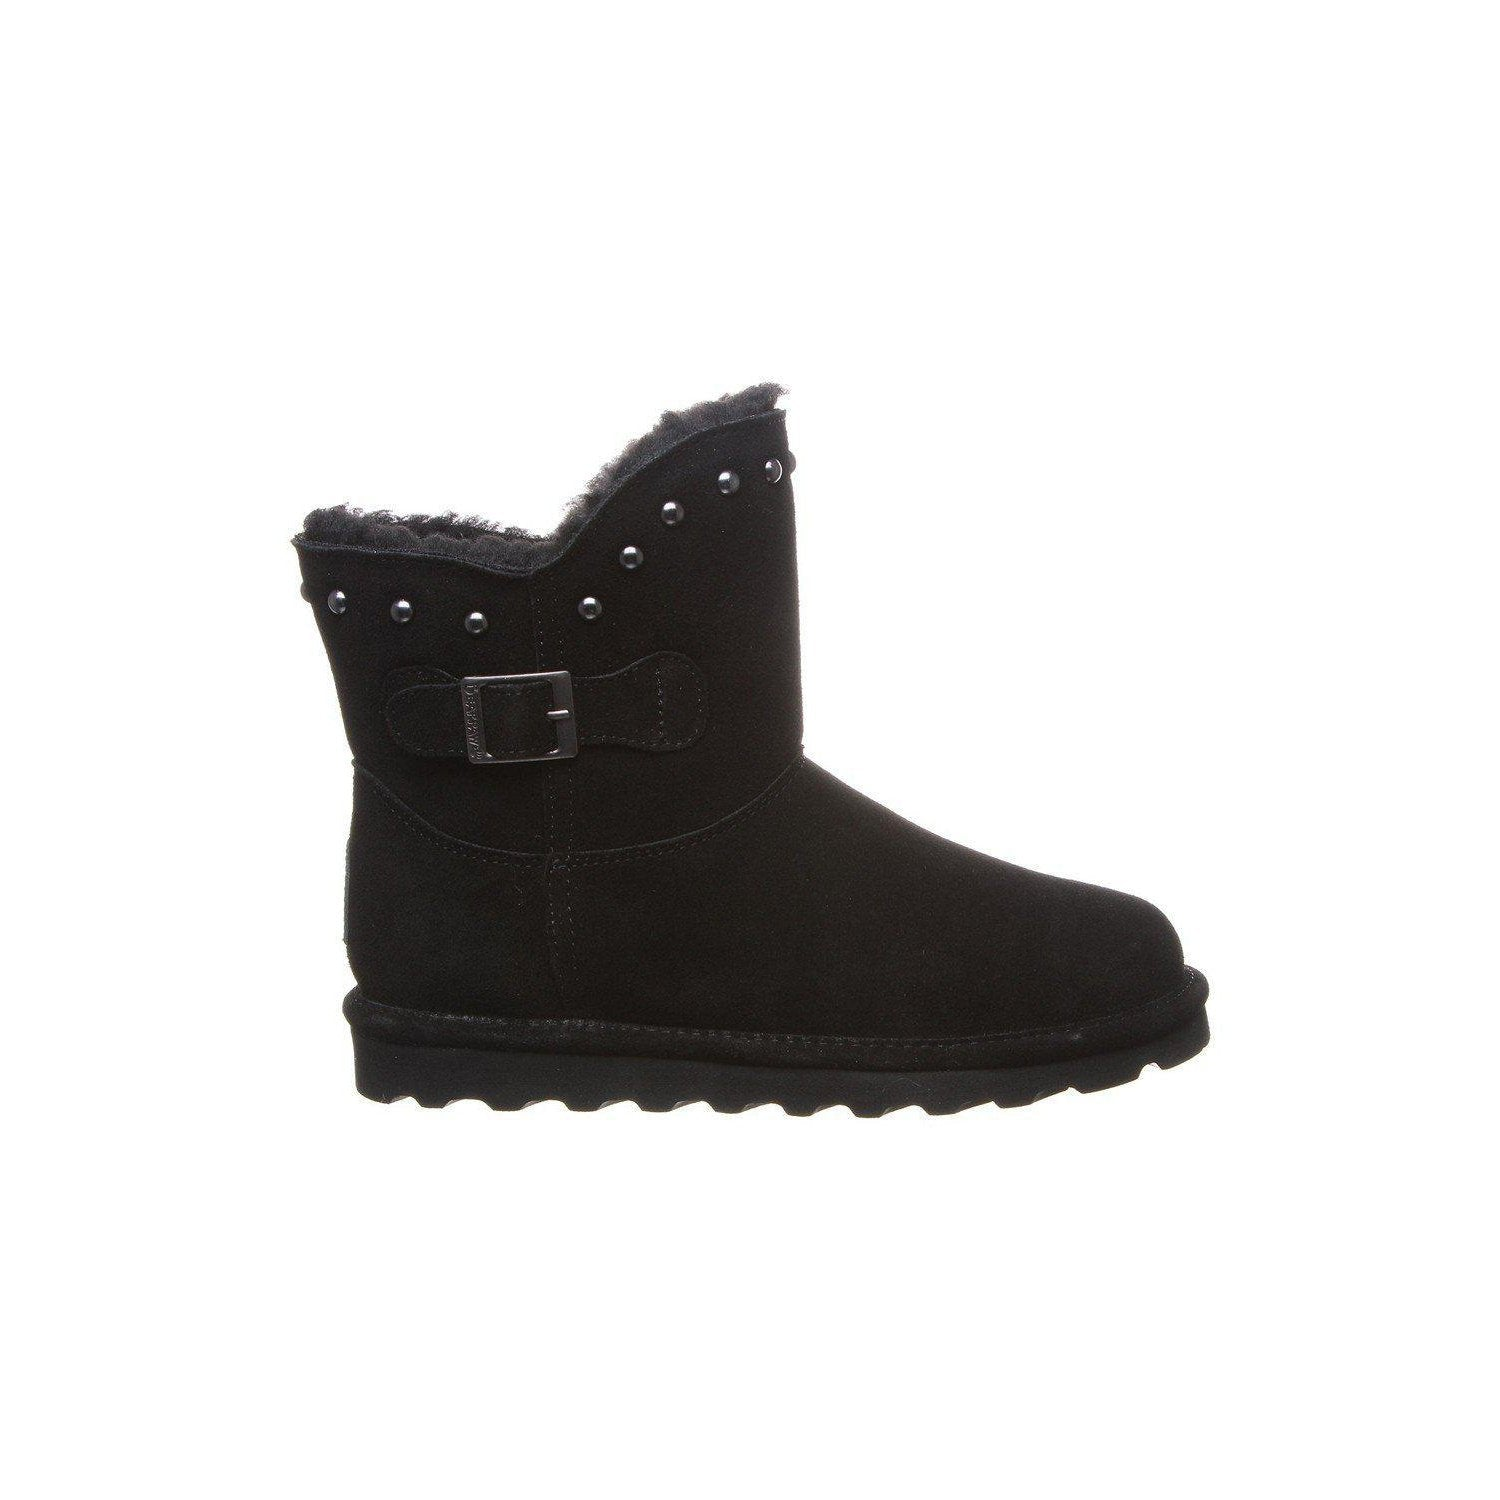 Minnie Studded Winter Boots